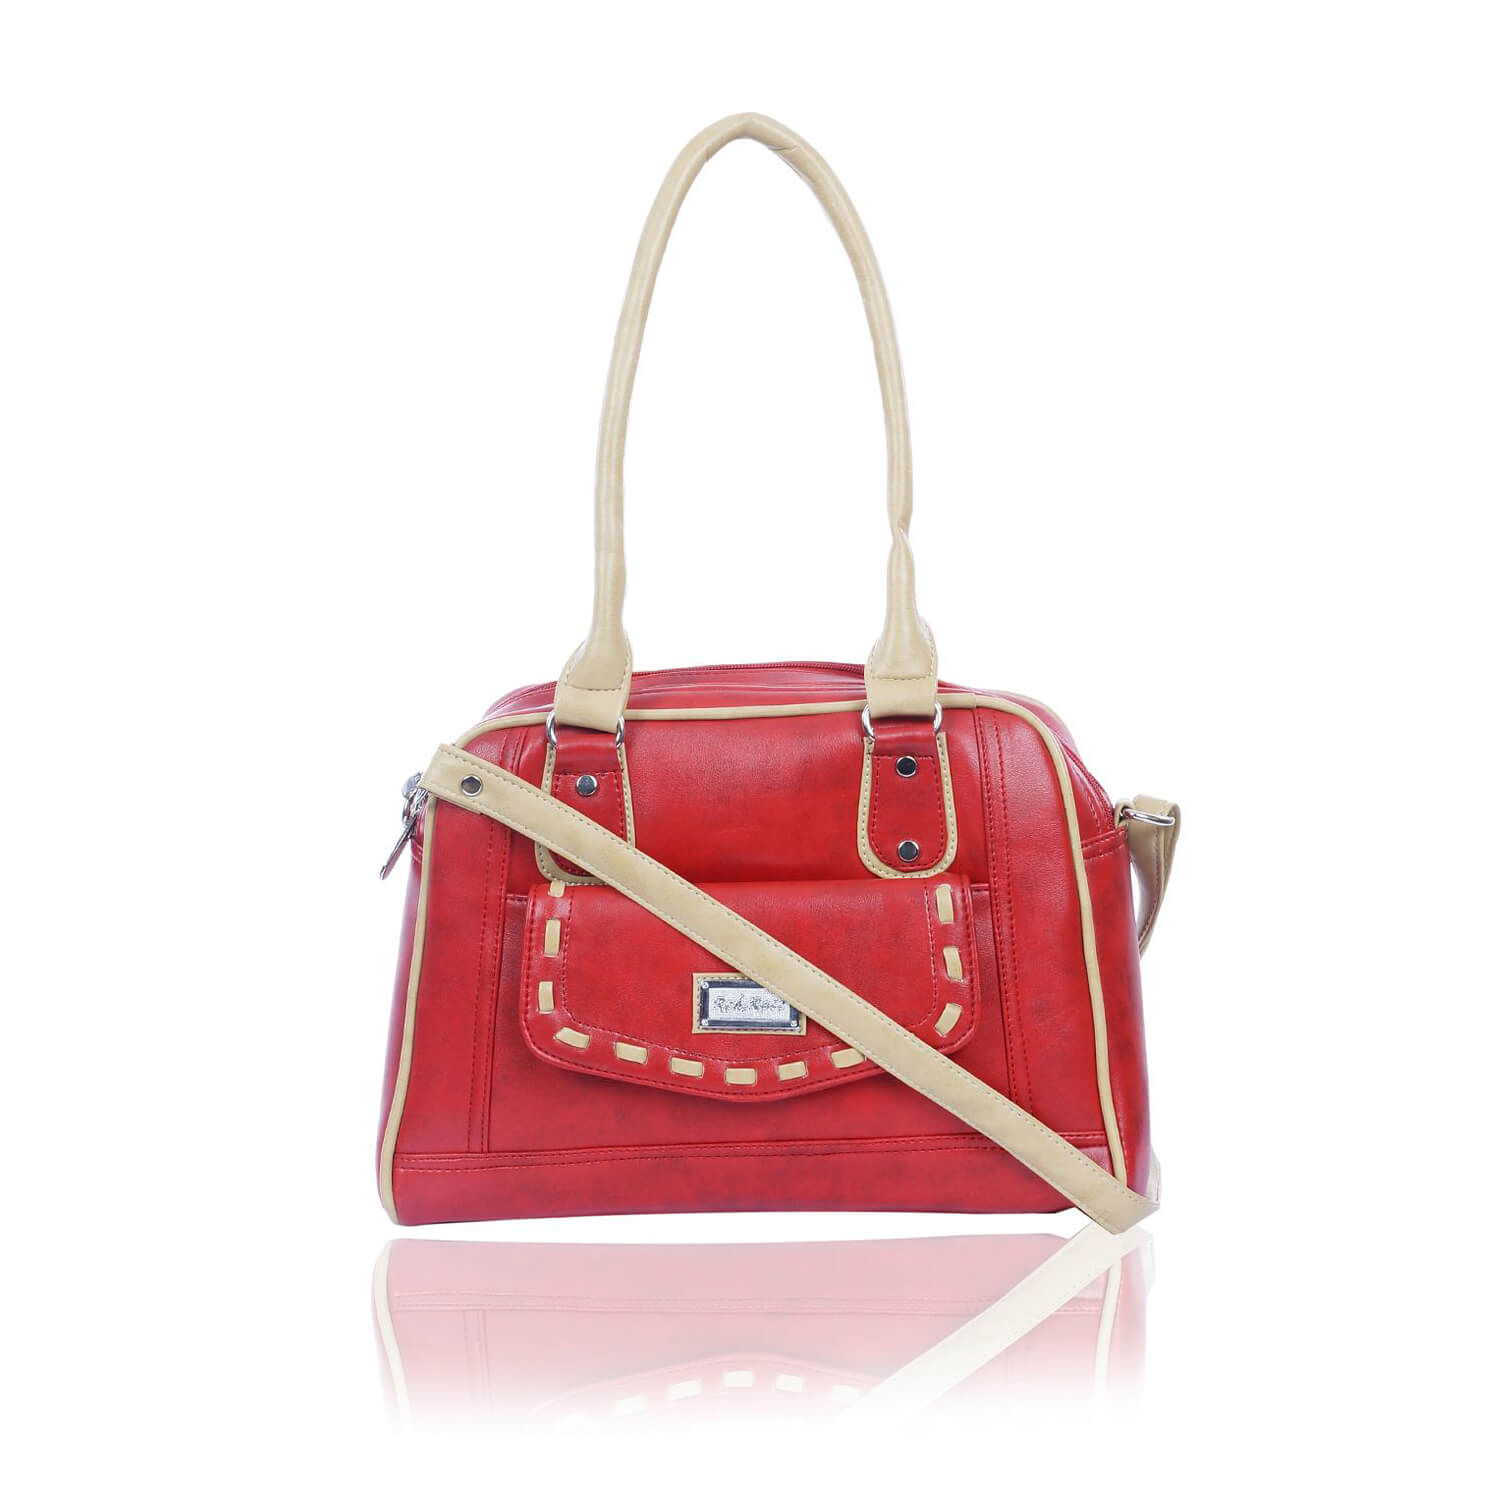 Right Choice RCH281 women's handbags(Red)contemporary,trending